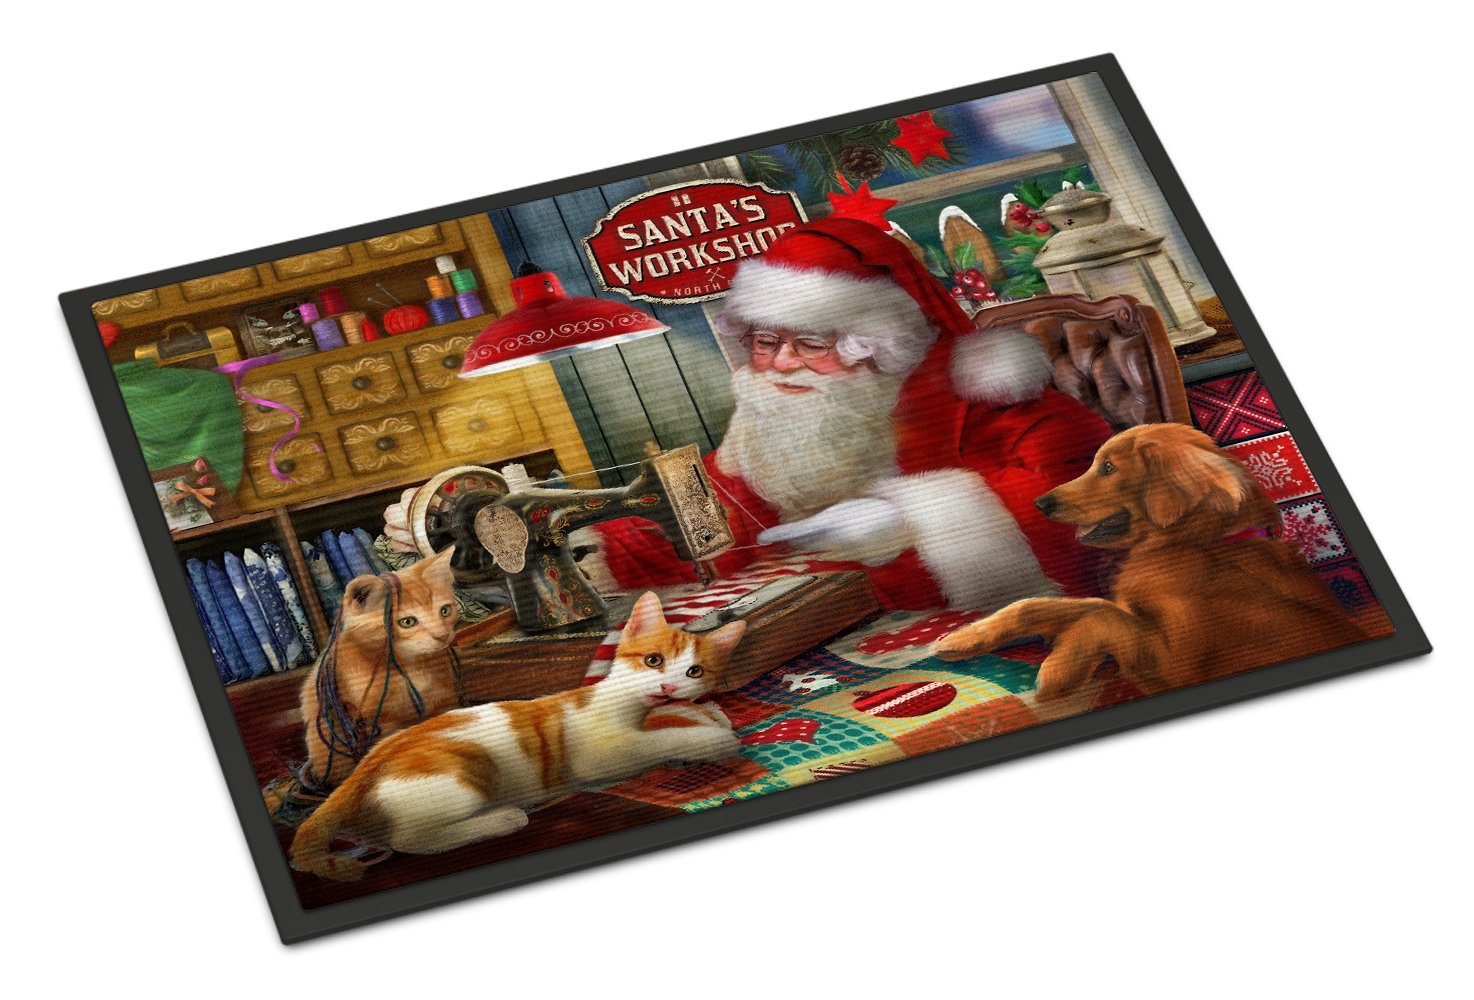 Santa's Workshop, Golden Retriever and Cats Indoor or Outdoor Mat 24x36 PTW2067JMAT by Caroline's Treasures